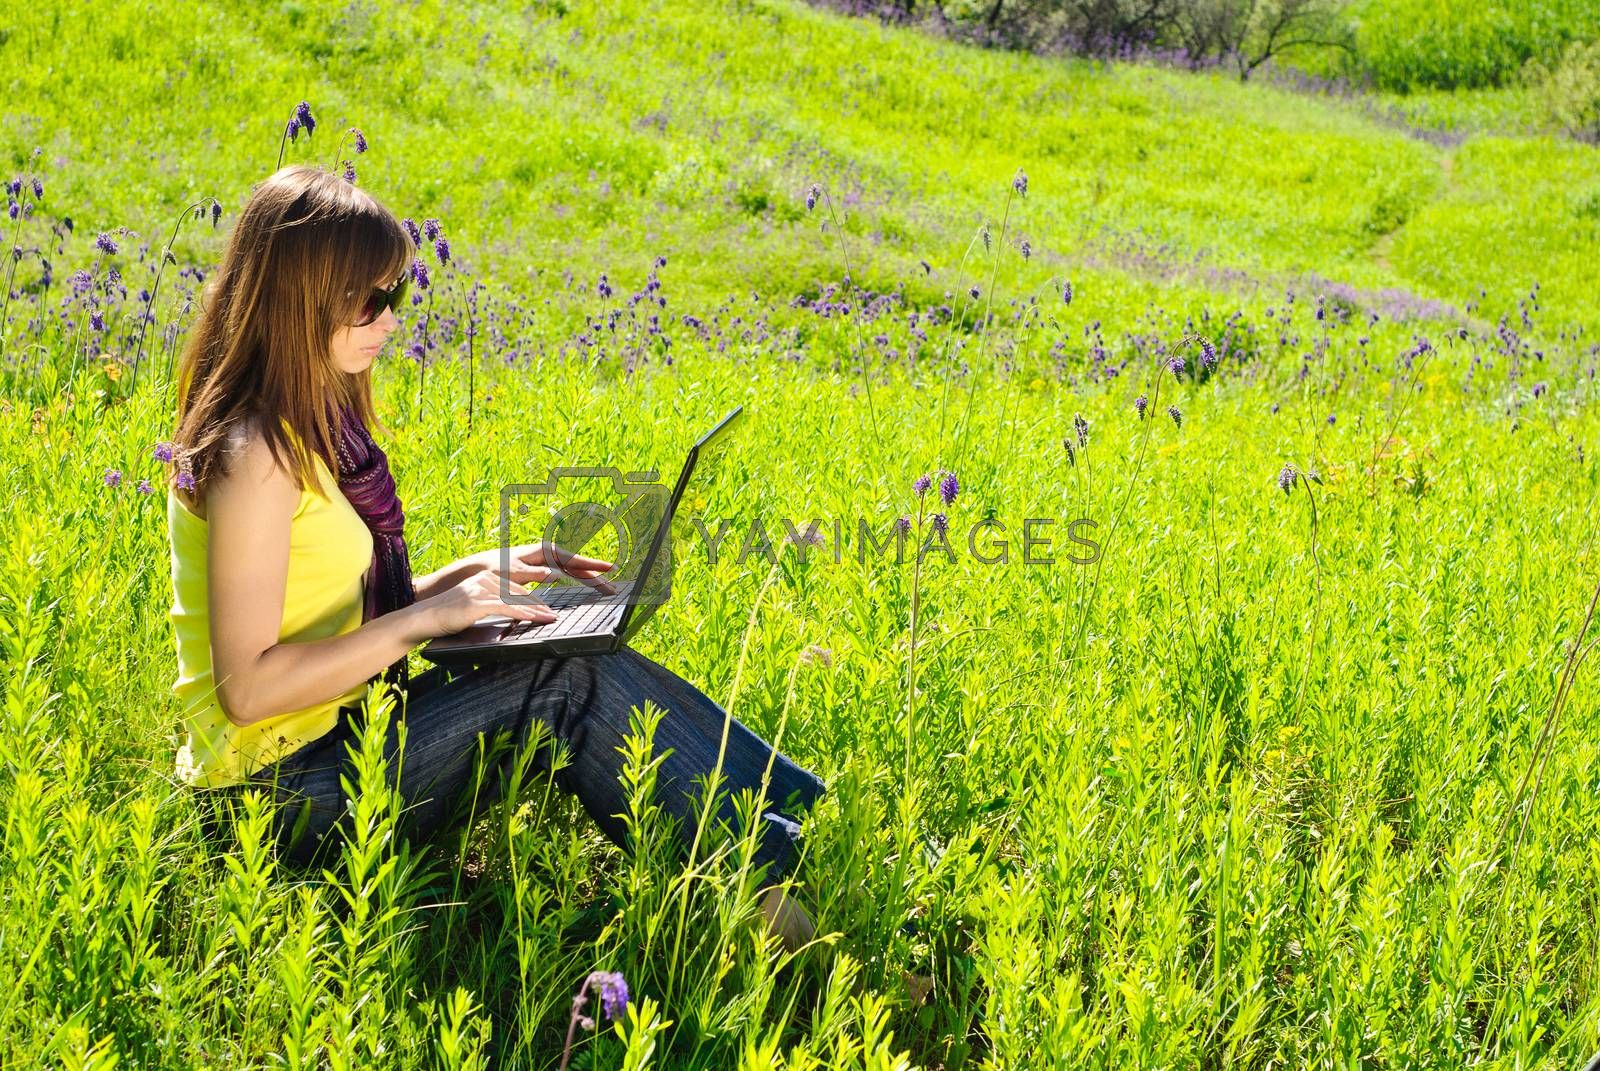 Royalty free image of Woman with laptop by olegator1977